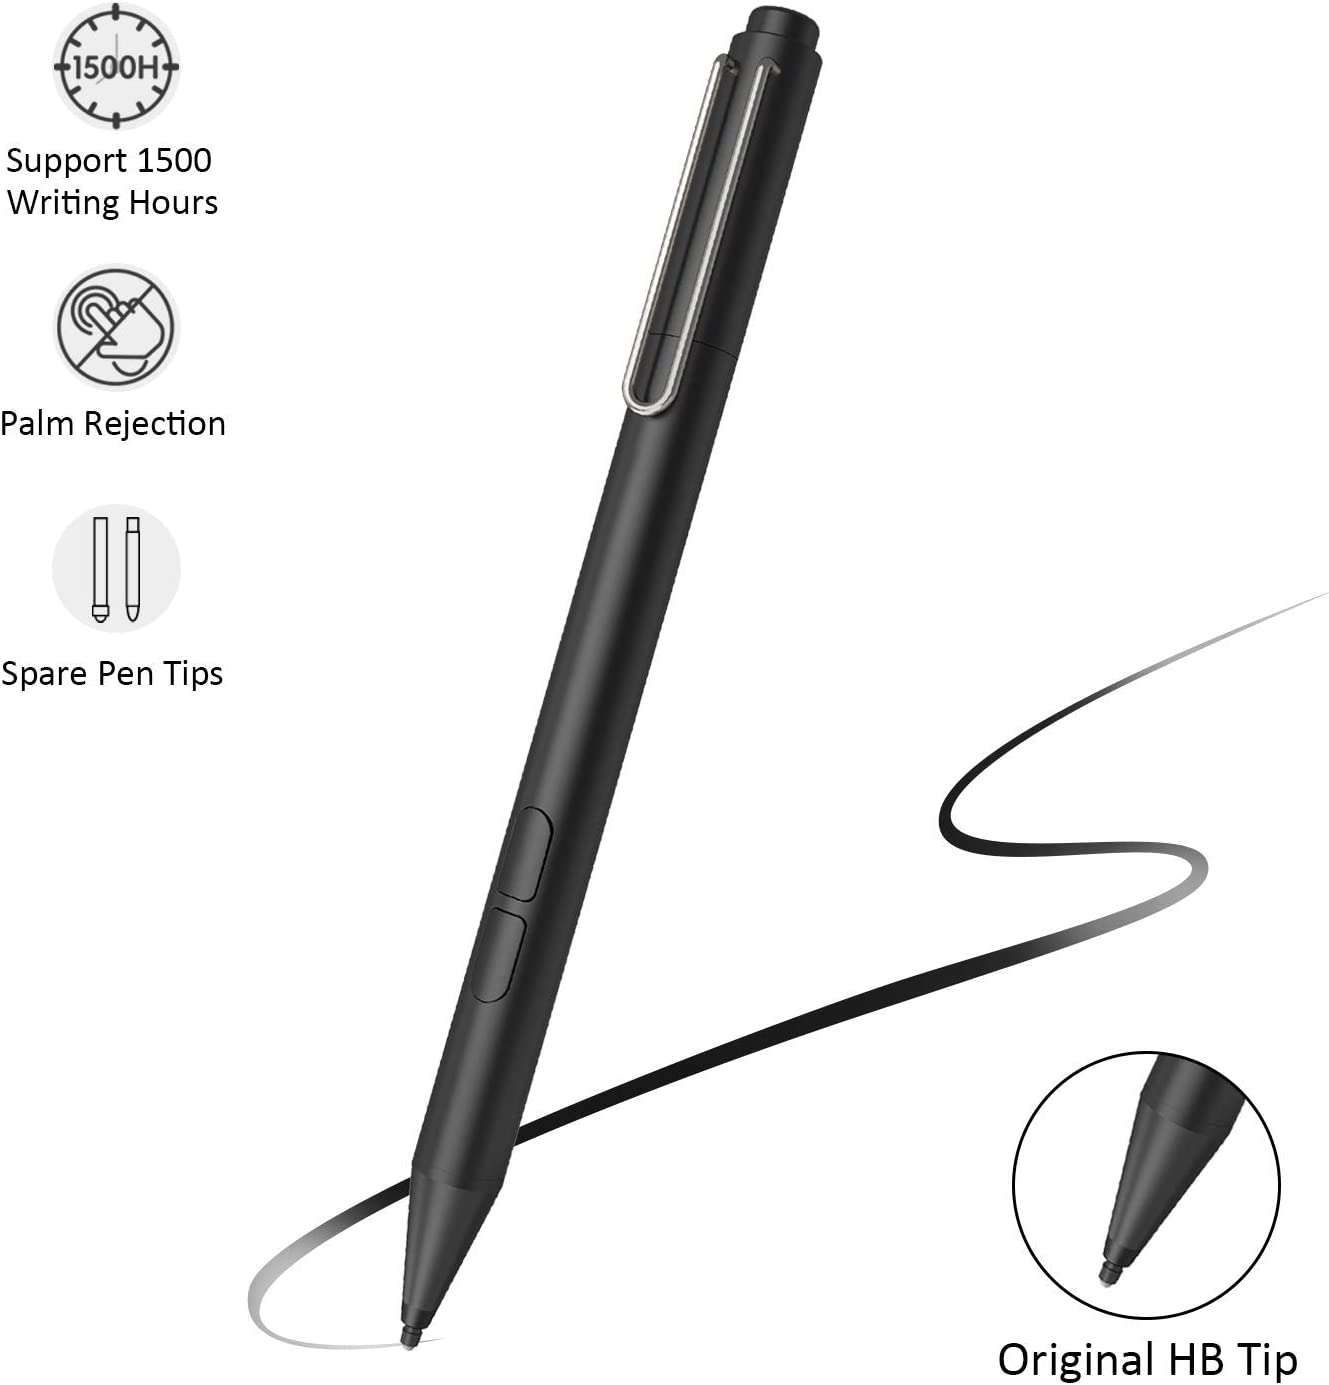 Uogic Pen for Microsoft Surface, Certified Digital Stylus with Palm Rejection, 1024 Levels Pressure, Flex & Soft HB Nib, for Surface Pro/Go/Laptop/Book/Studio, Including 2 Spare Nibs & AAAA Battery